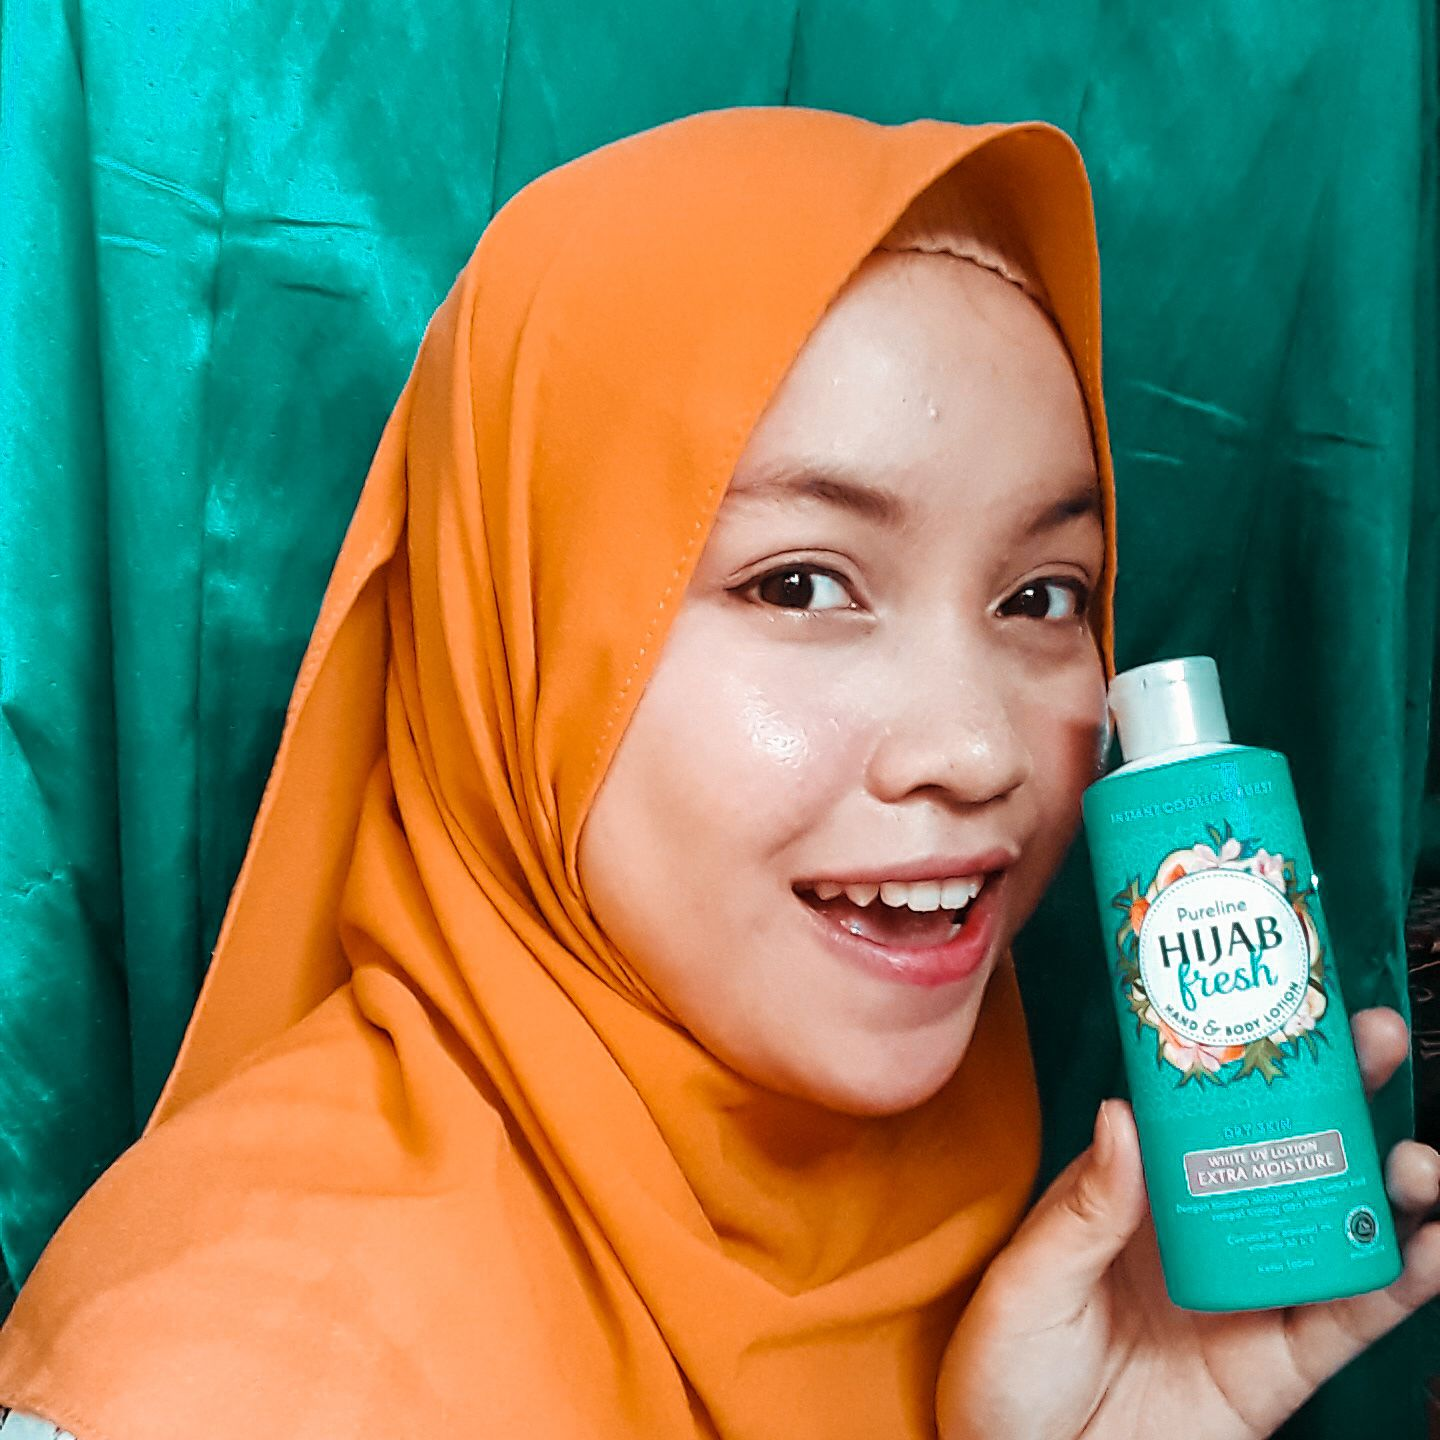 gambar review ke-2 untuk Pureline Hijab Fresh Hand & Body Lotion Healthy & Bright